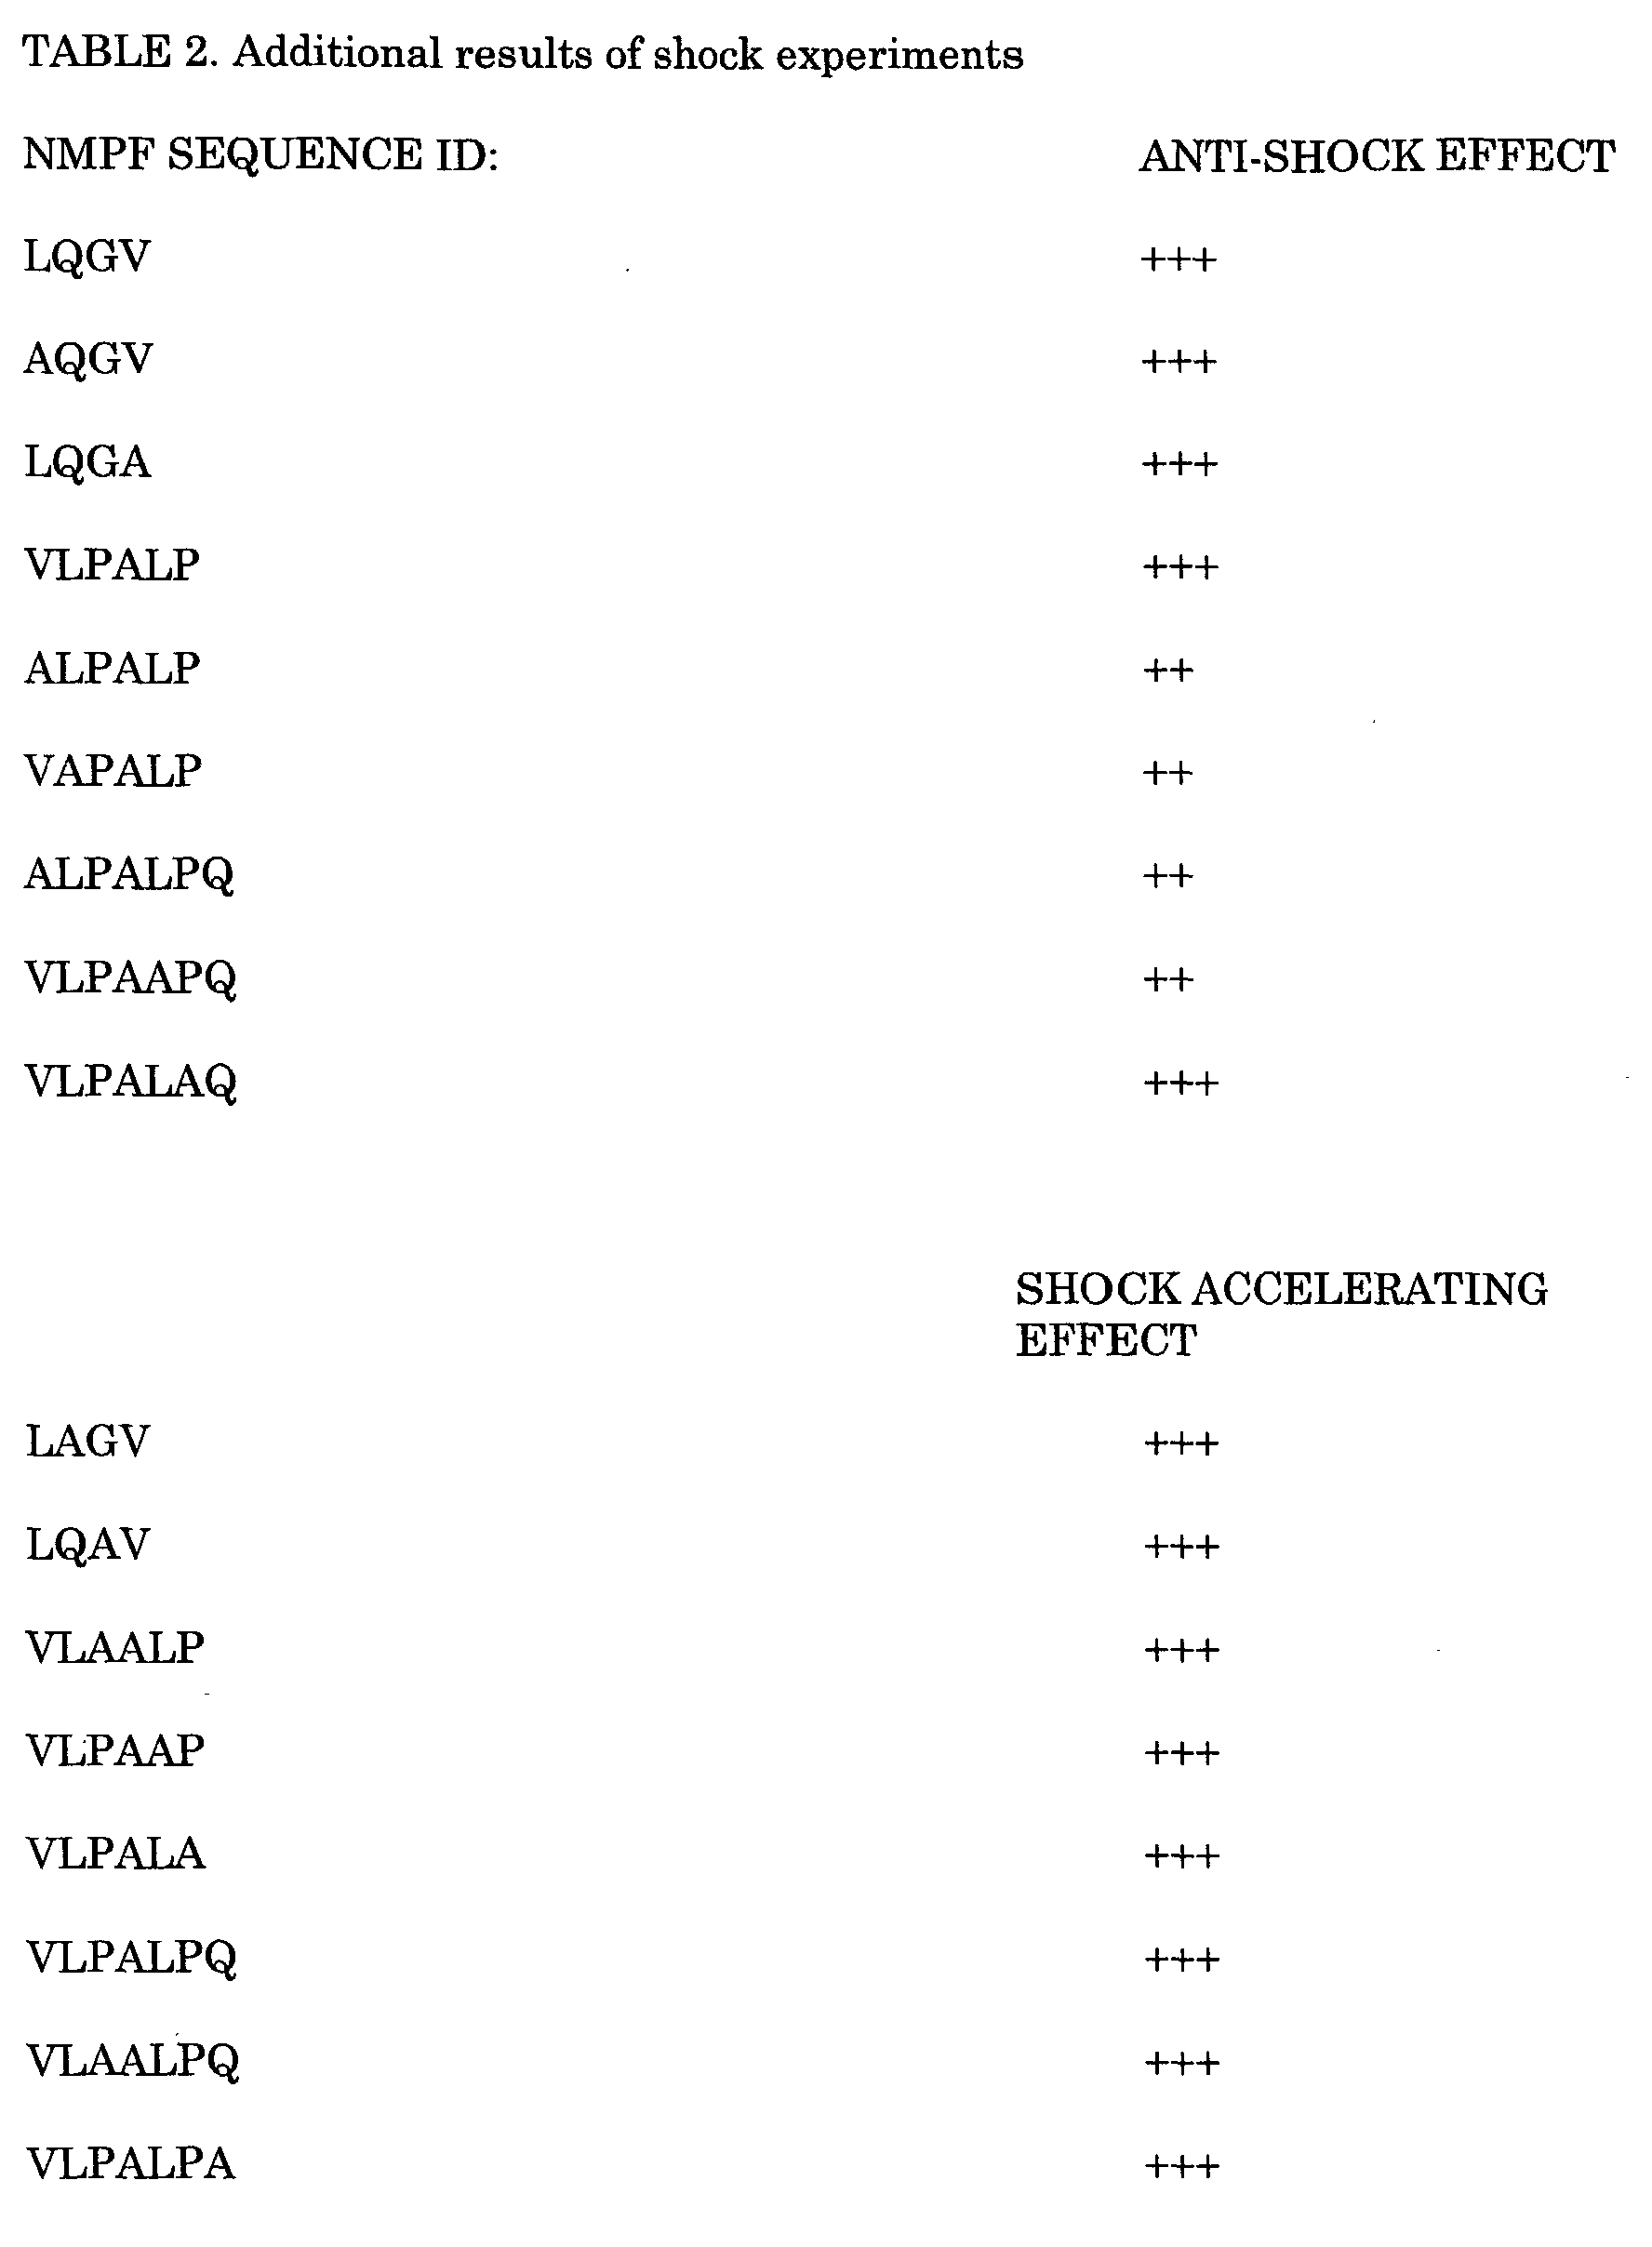 What analogue of Pregnil to use Comparison of the analogues of Pregnil